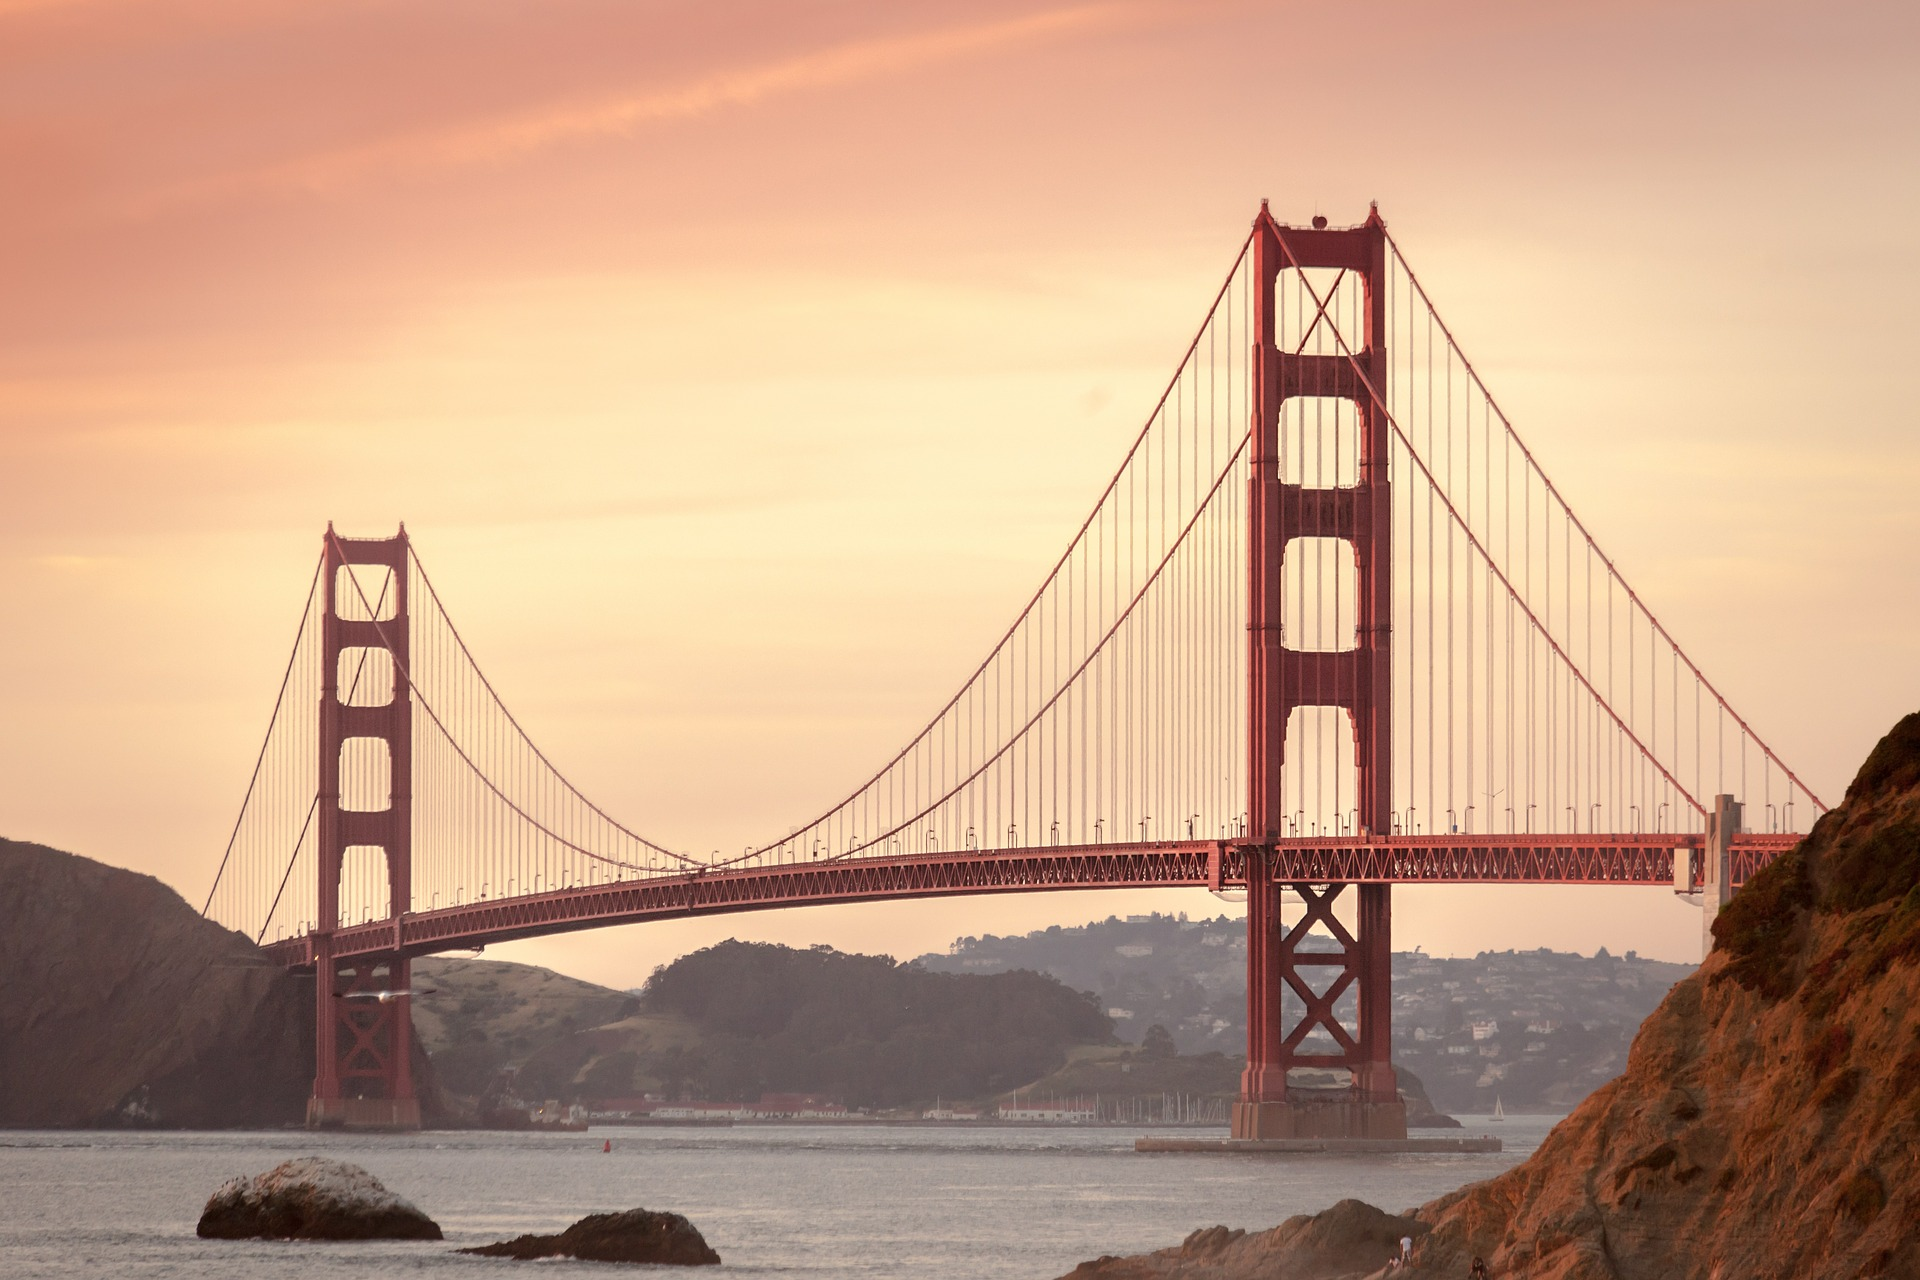 The world-famous Golden Gate Bridge can be found in California. Source: Pixabay